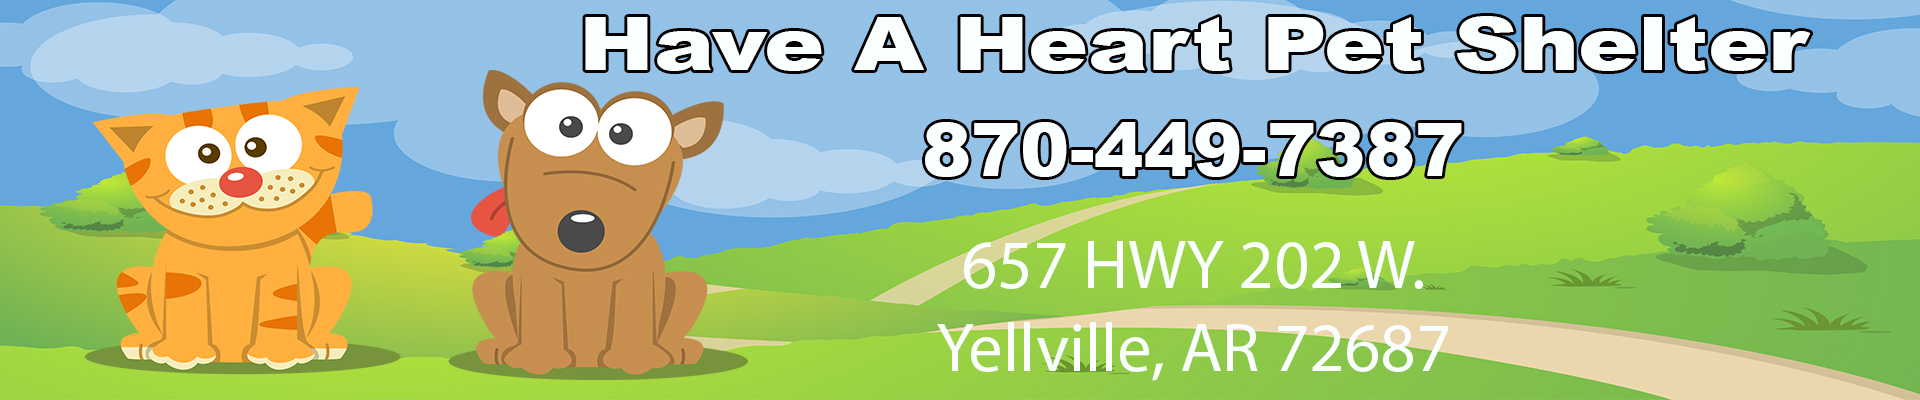 Have A Heart Pet Shelter-Banner